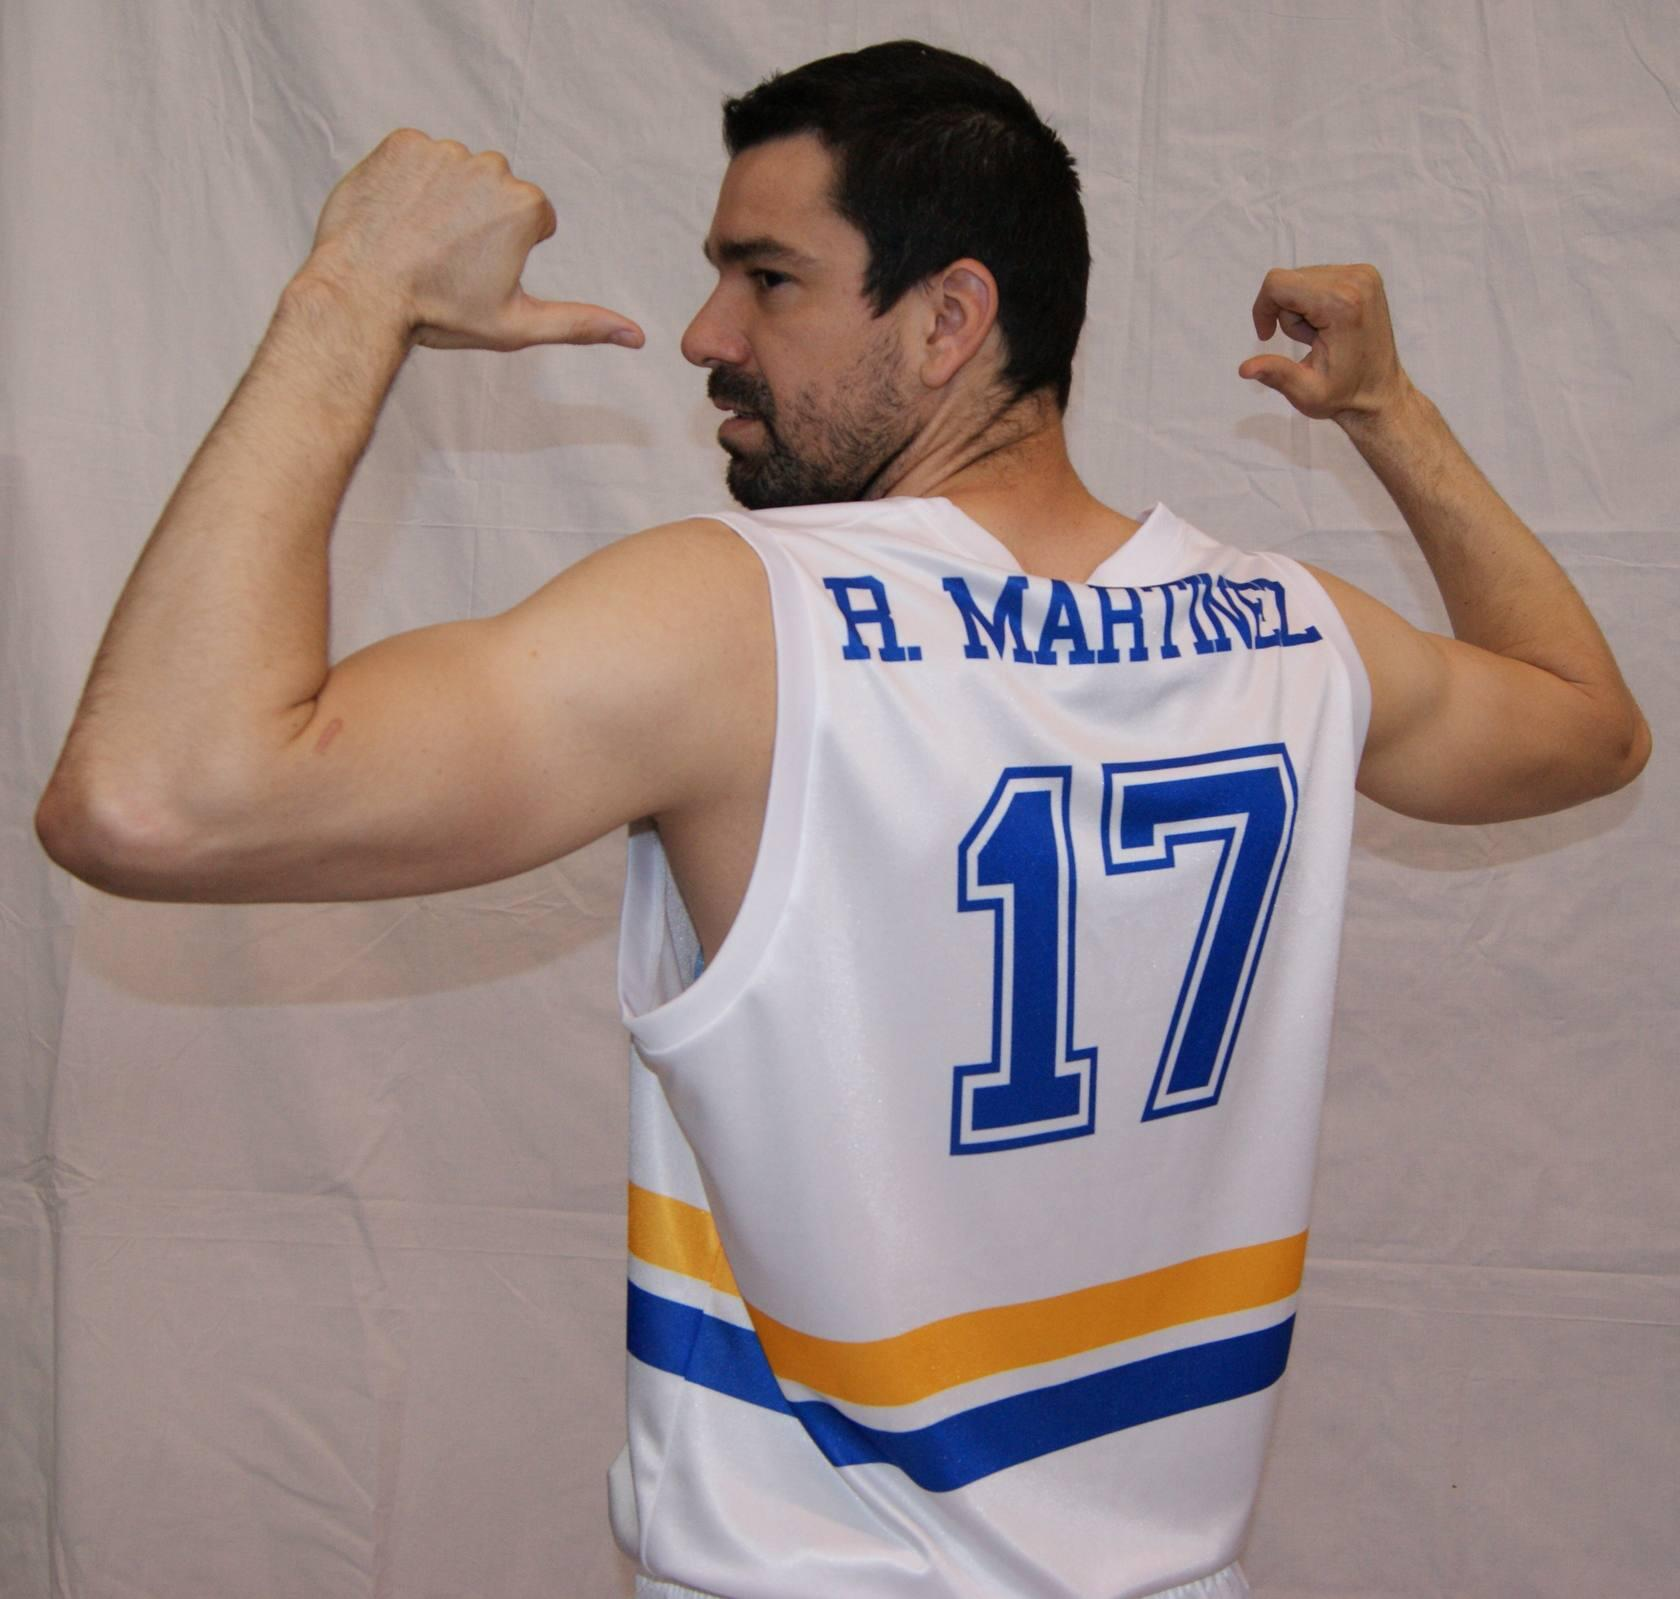 Rafa Mart&iacute;nez posa con la camiseta retro del Valencia Basket (02/05/2013)